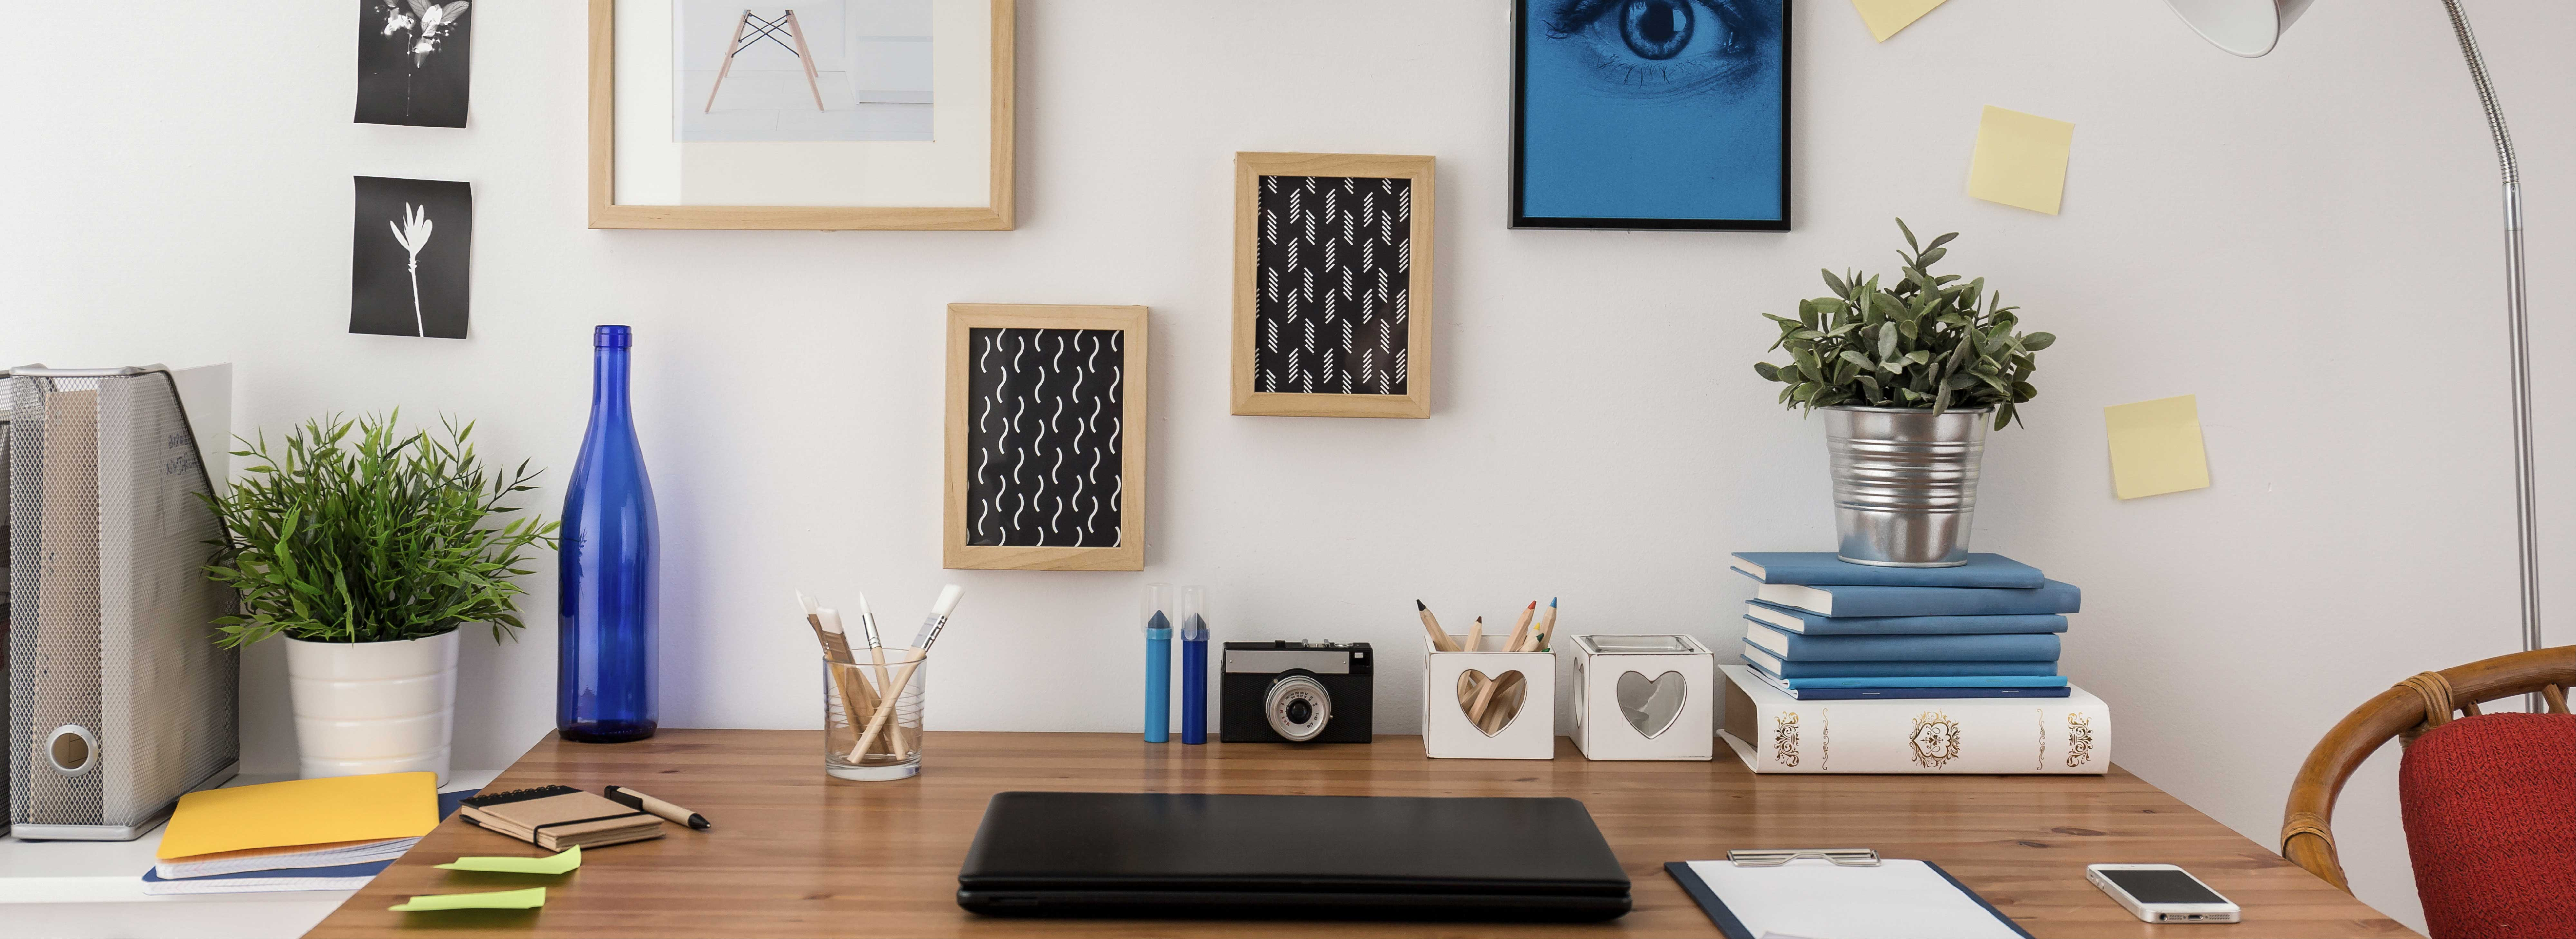 Decluttering your office by DECLUTR, professional organiser in Canberra